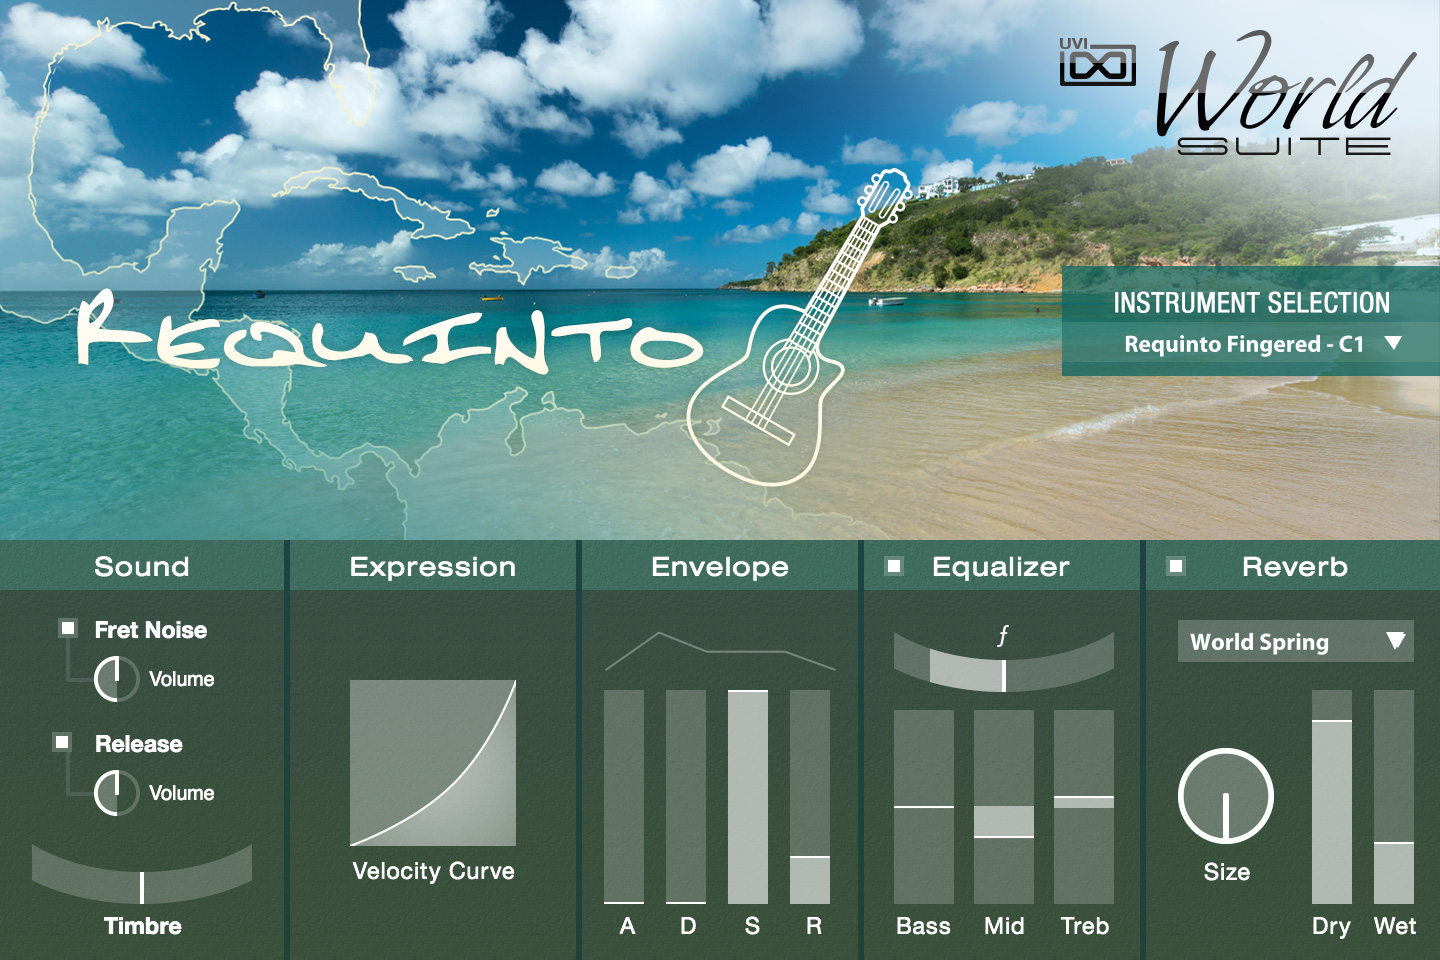 UVI World Suite | Requinto UI